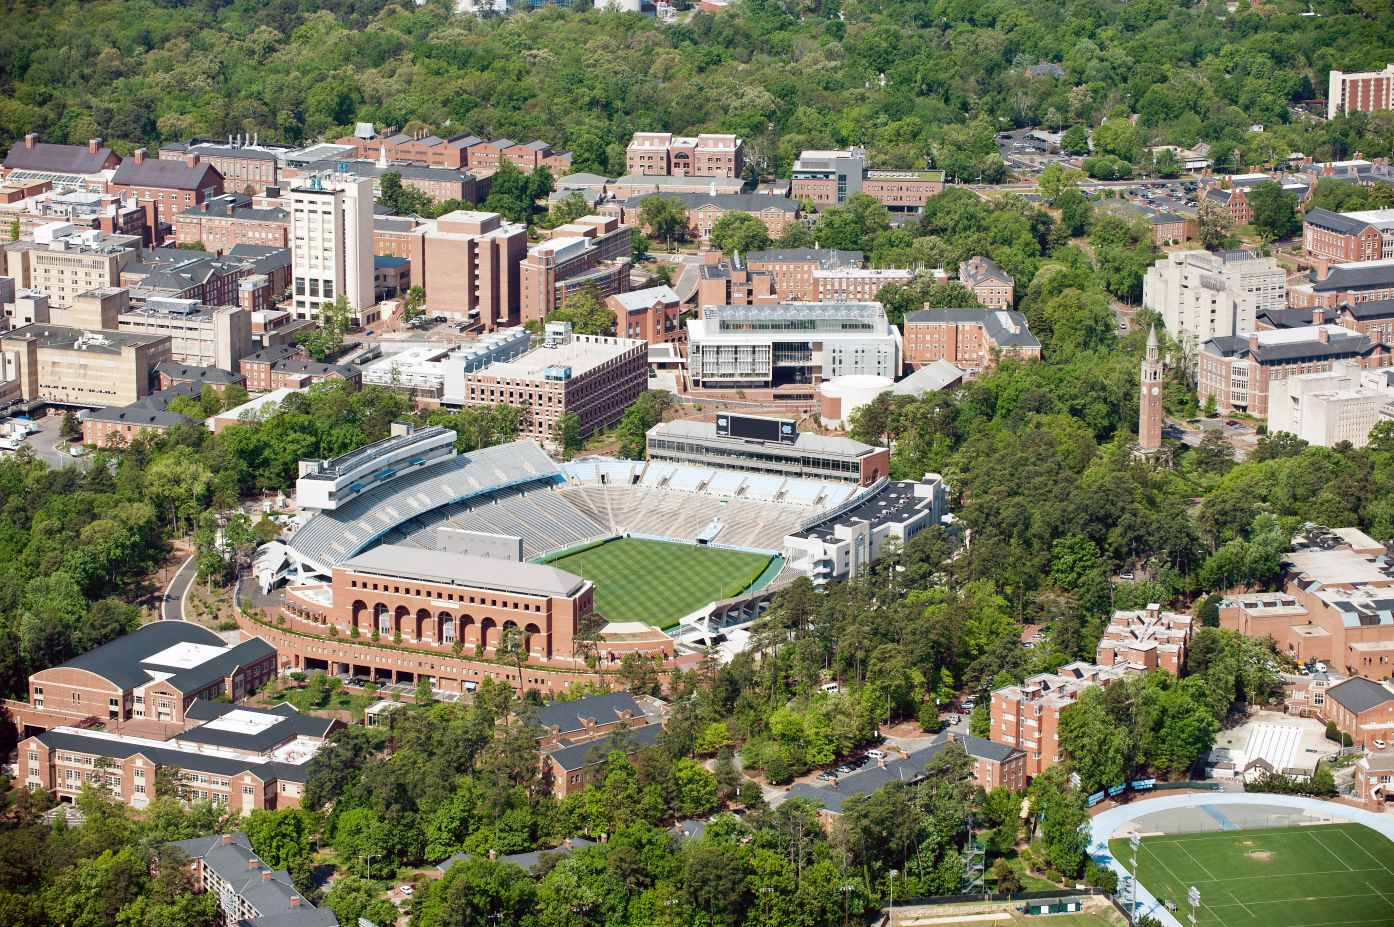 Aerial View of the University North Carolina Campus